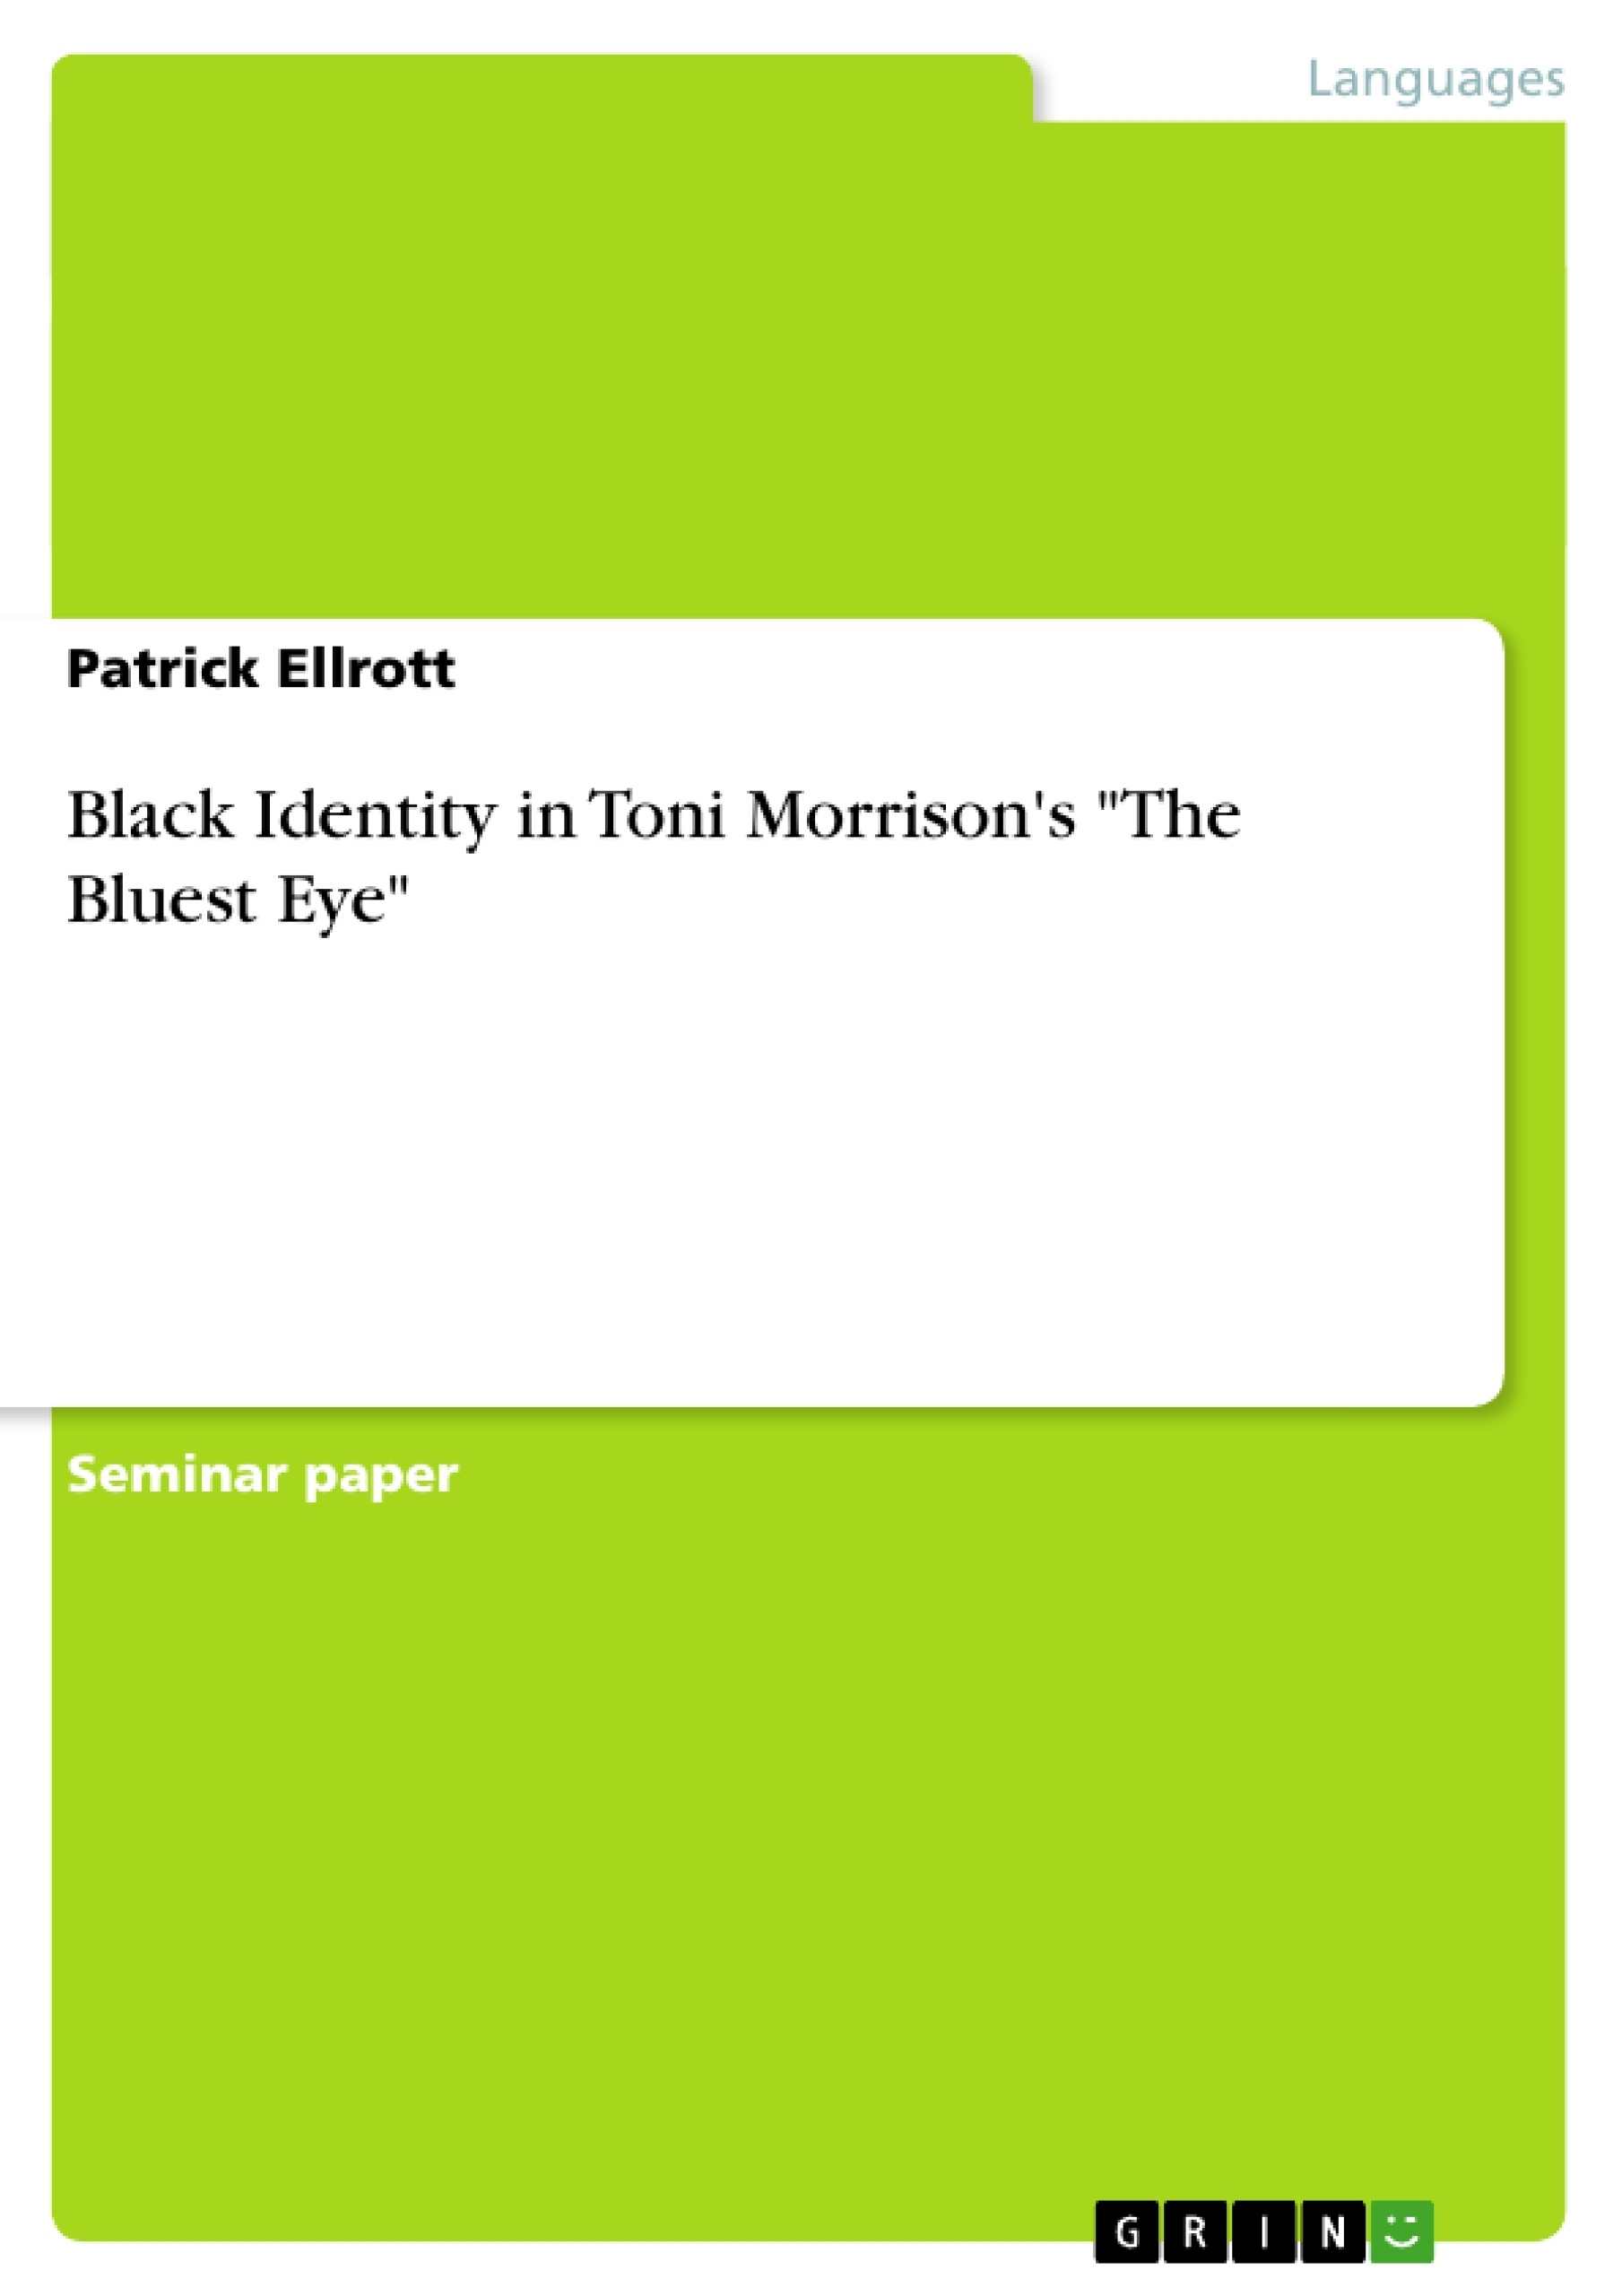 Bluest Eye by Toni Morrison